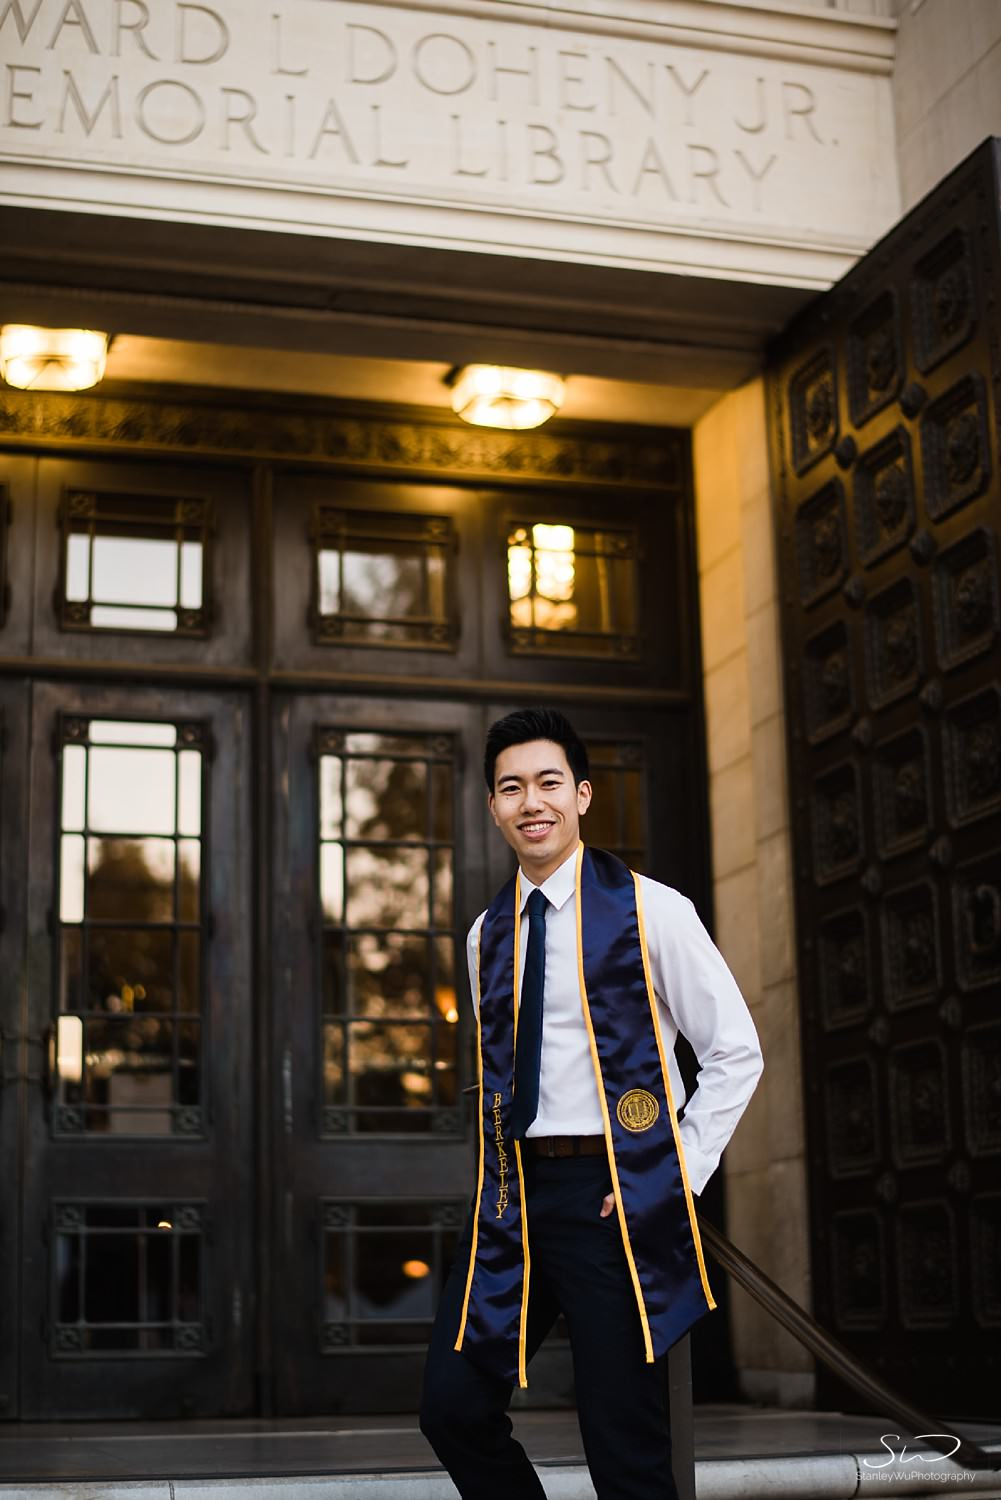 UC Berkeley Senior standing in front of Doheny Library USC | Los Angeles Graduation and Senior Portrait Photographer